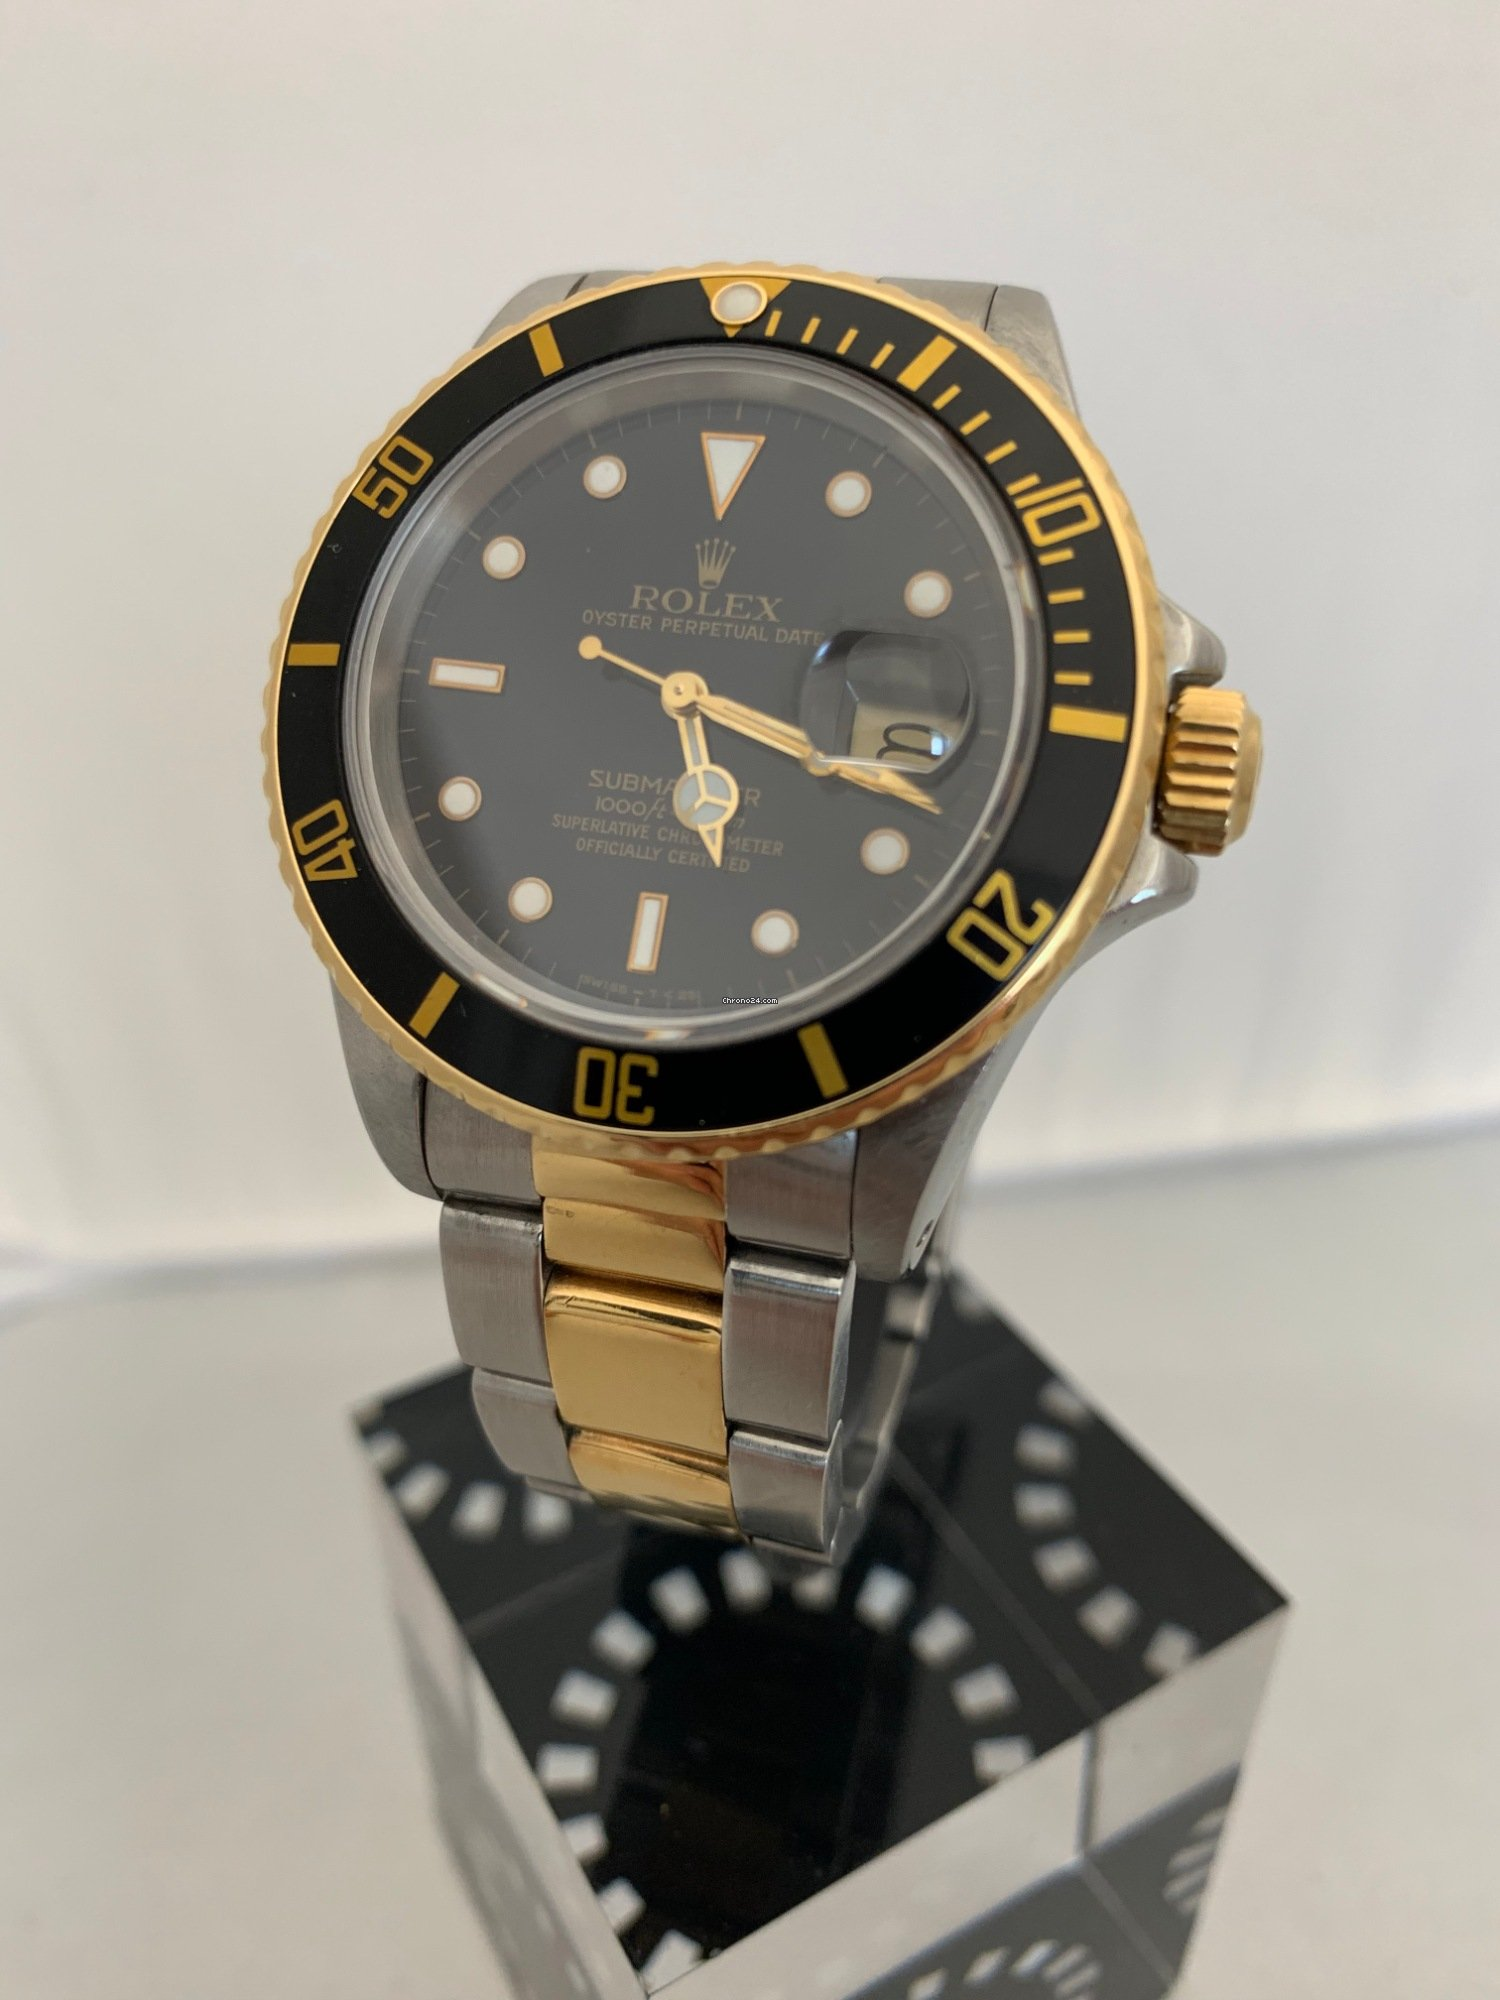 Rolex Submariner Date TWO TONE for $7,217 for sale from a